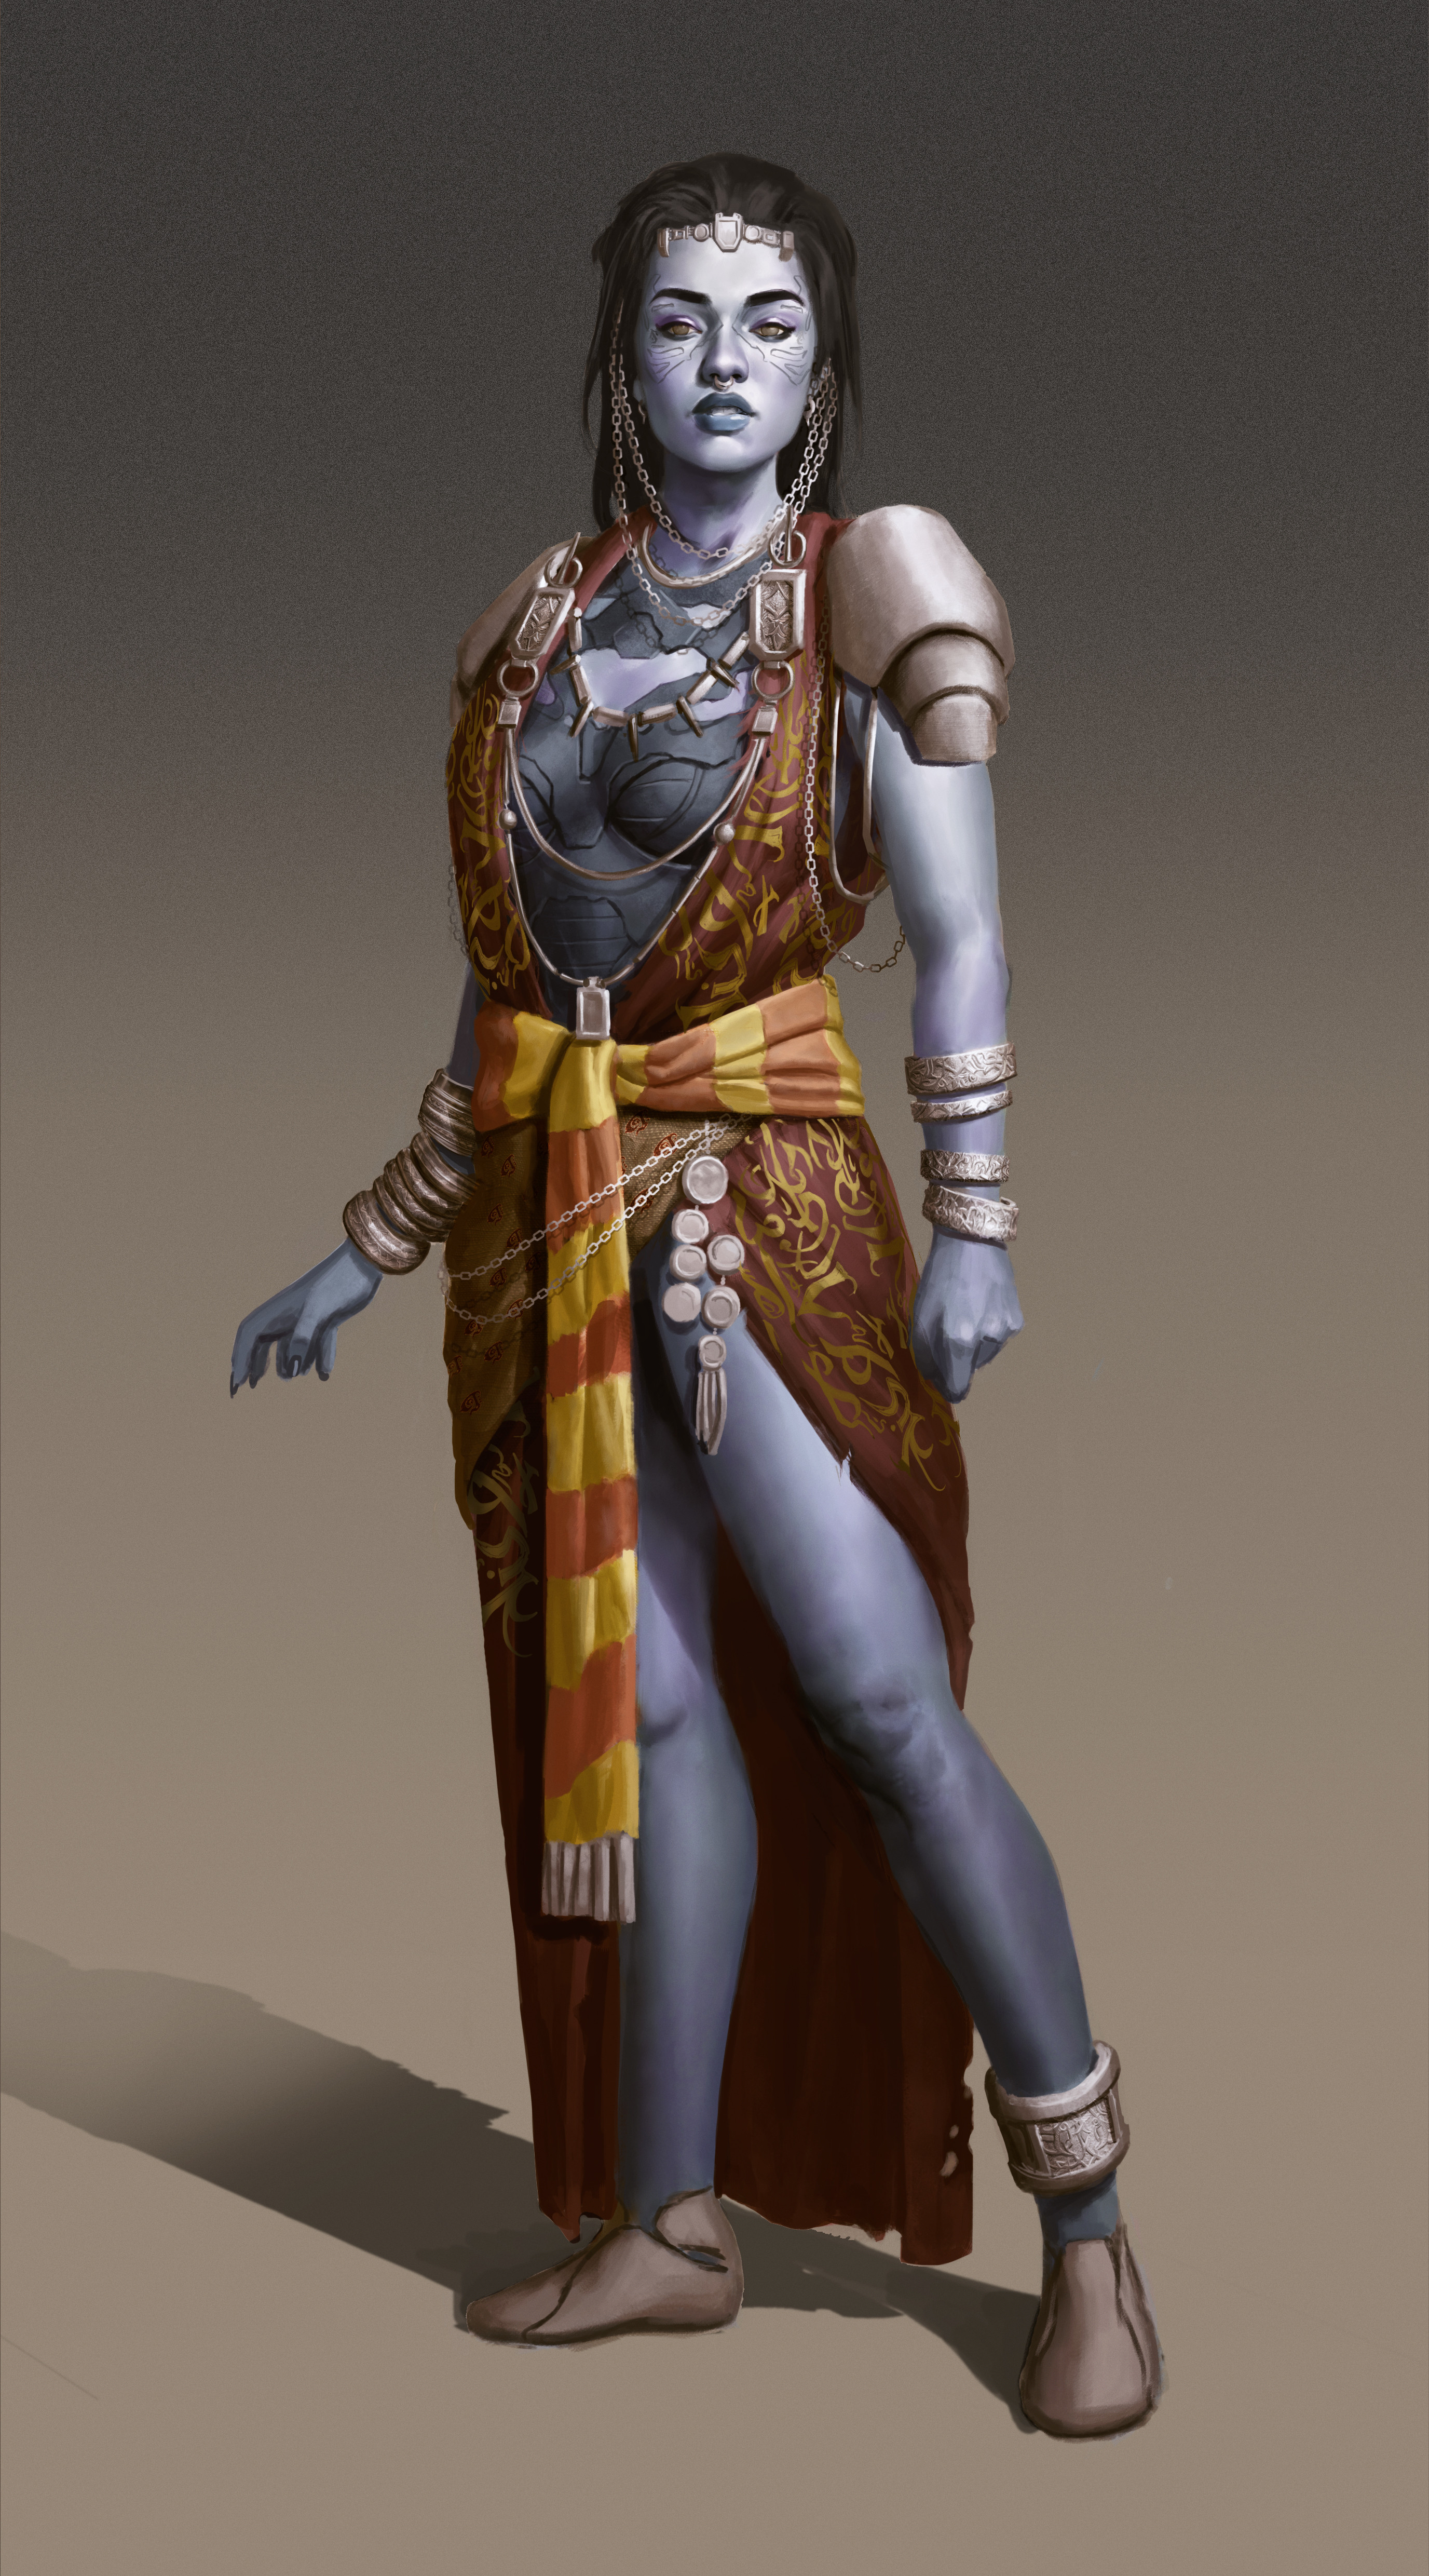 tribal queen concept for a personal project. Inspired by north african Berber culture.